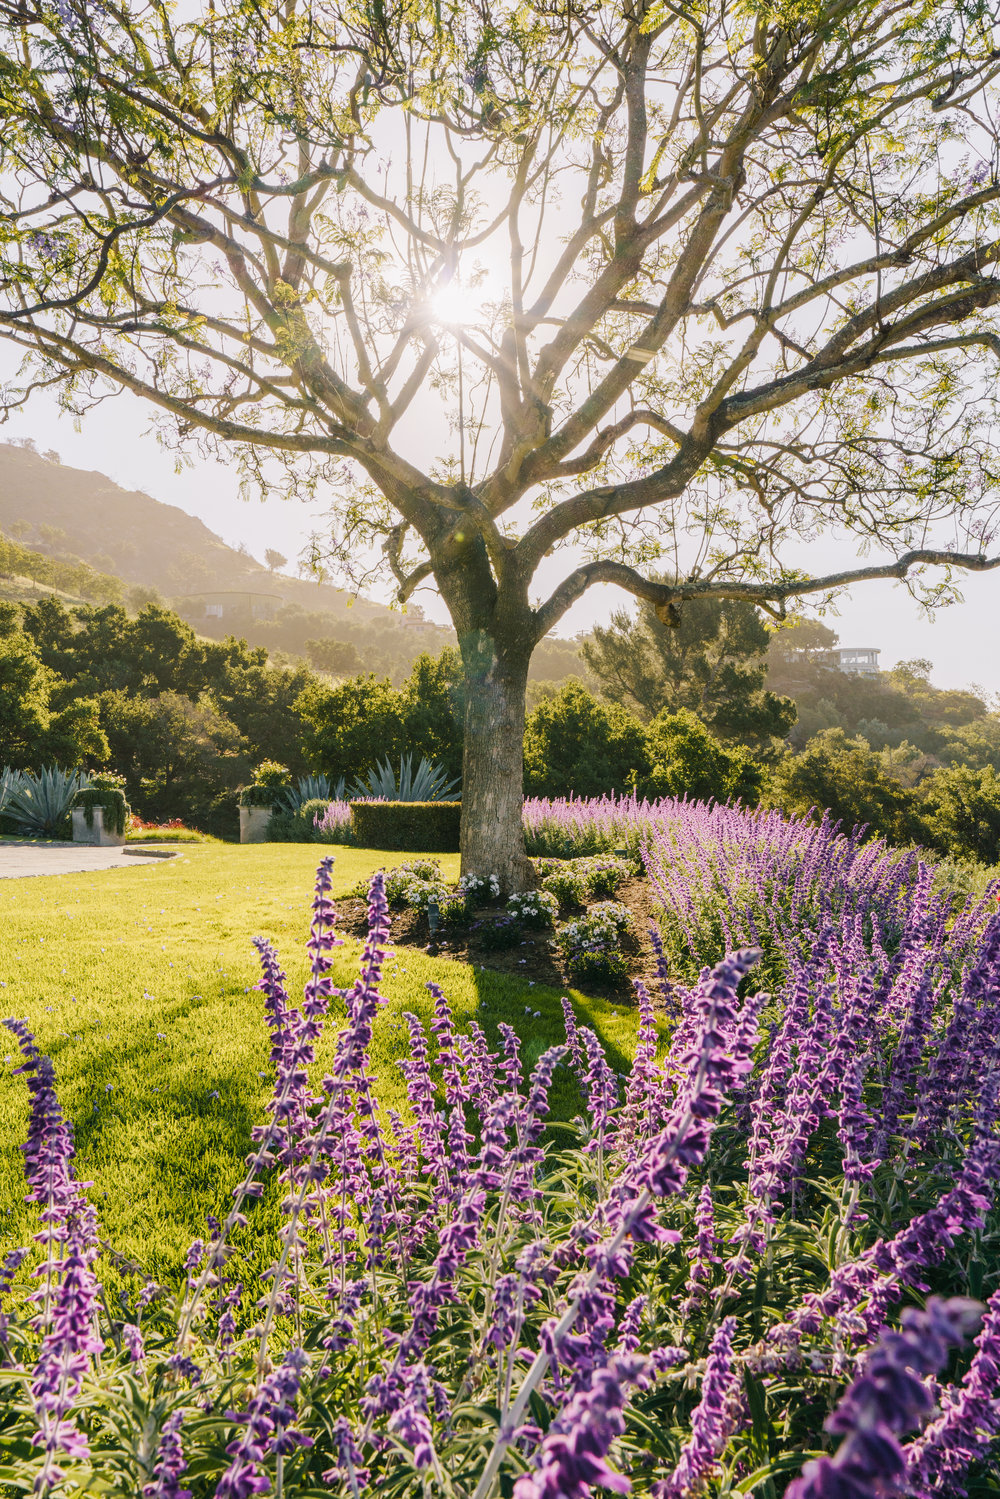 -31.25% Q2 - Montecito closed out Q2 with 44 properties sold, down 31.25% from last year.Click here to view the Montecito properties sold in Q2.